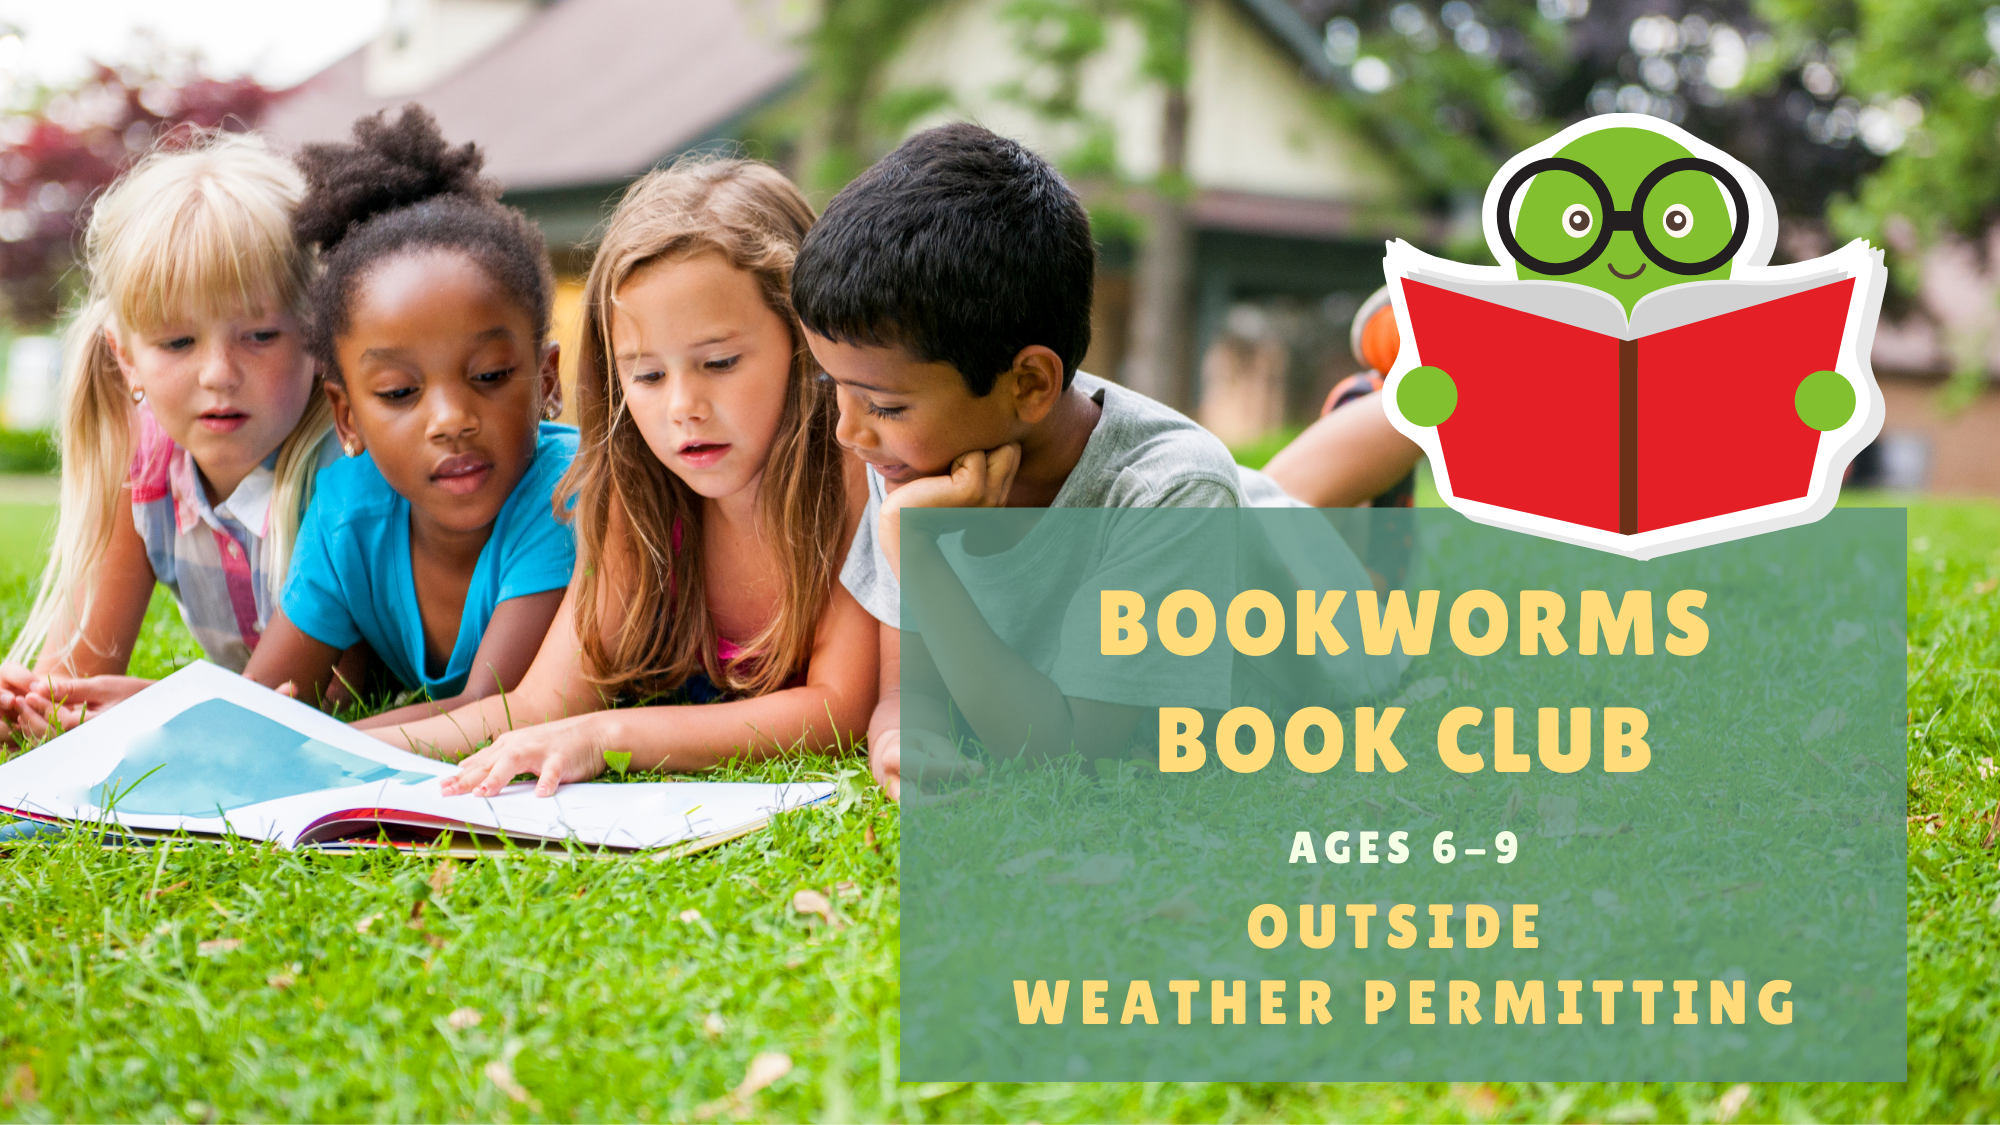 BookWorms Book Club for Kids